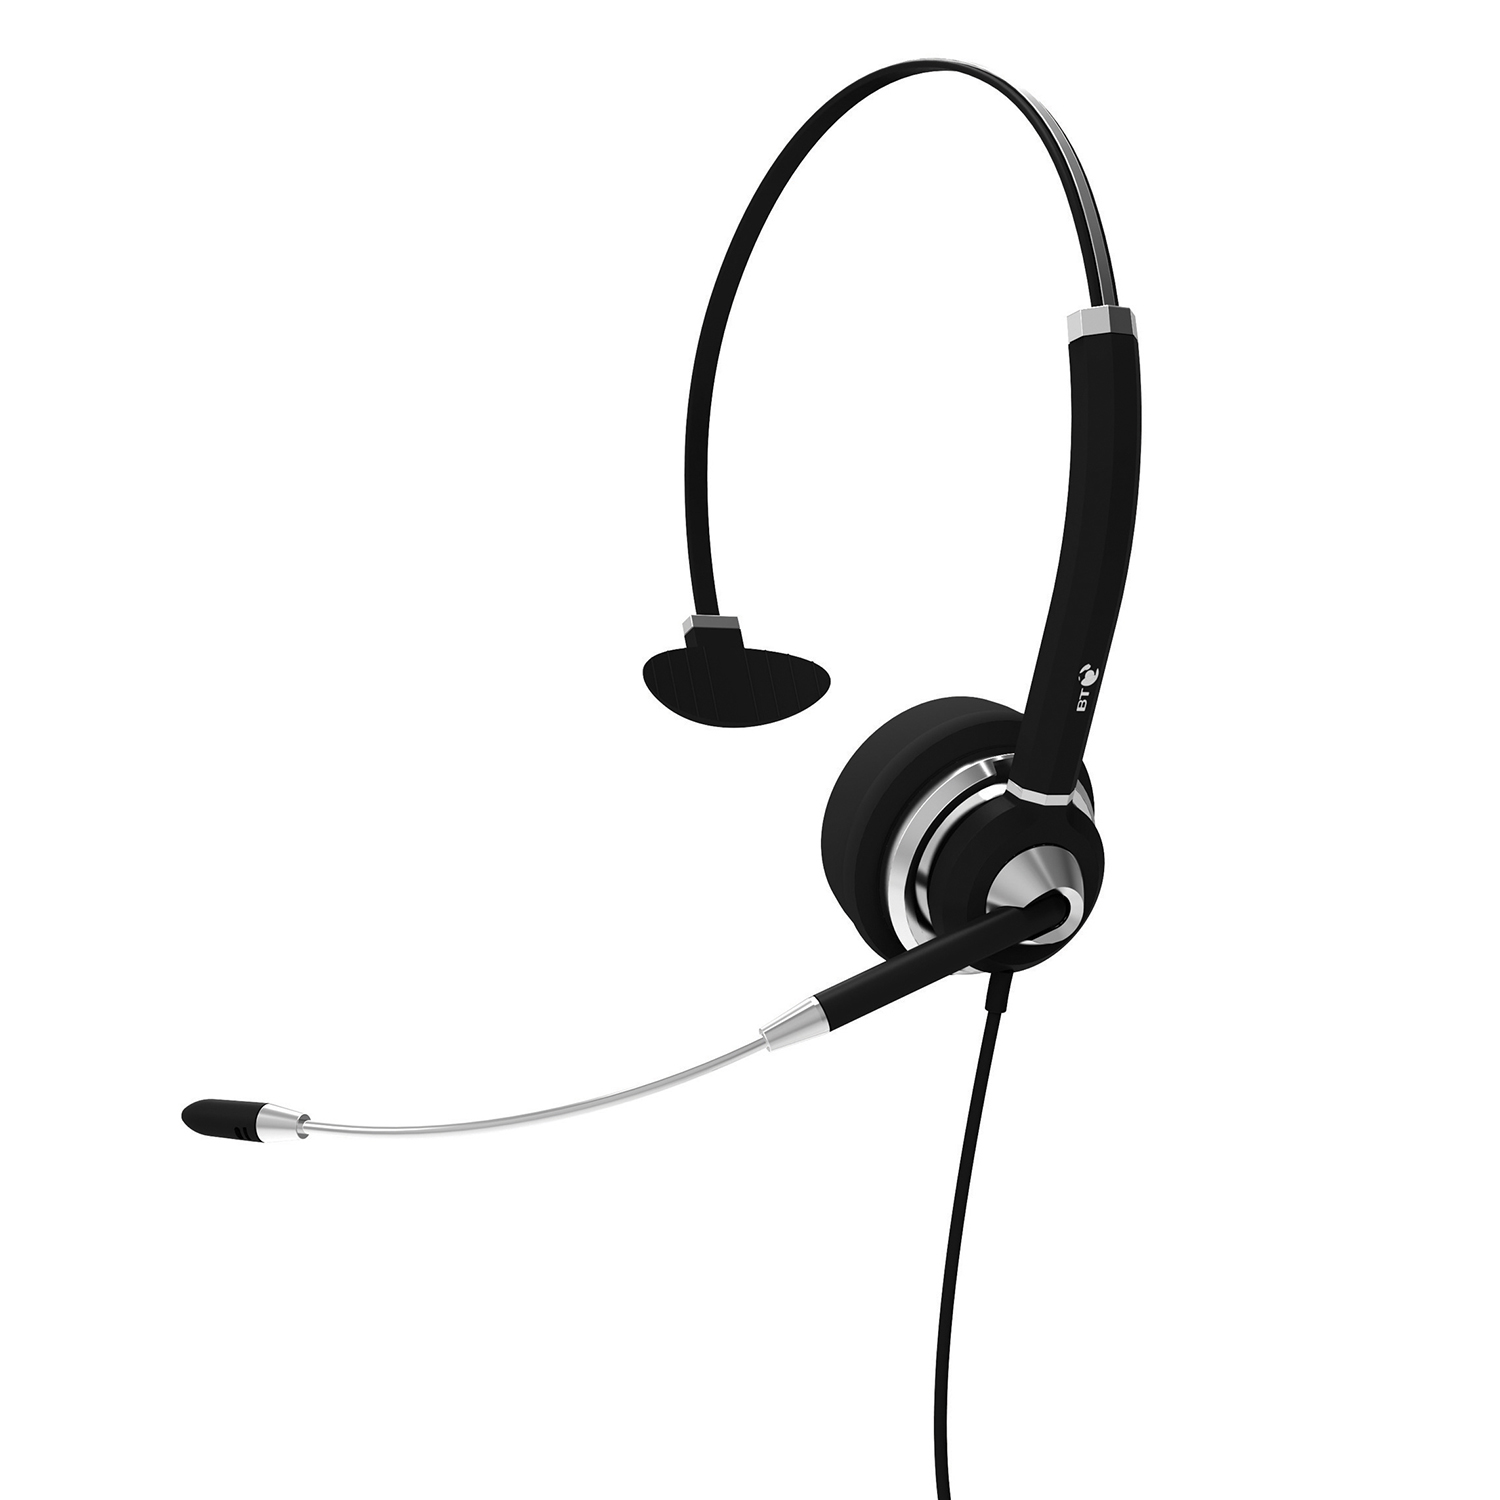 BT H31 Monaural Noise Cancelling Headset